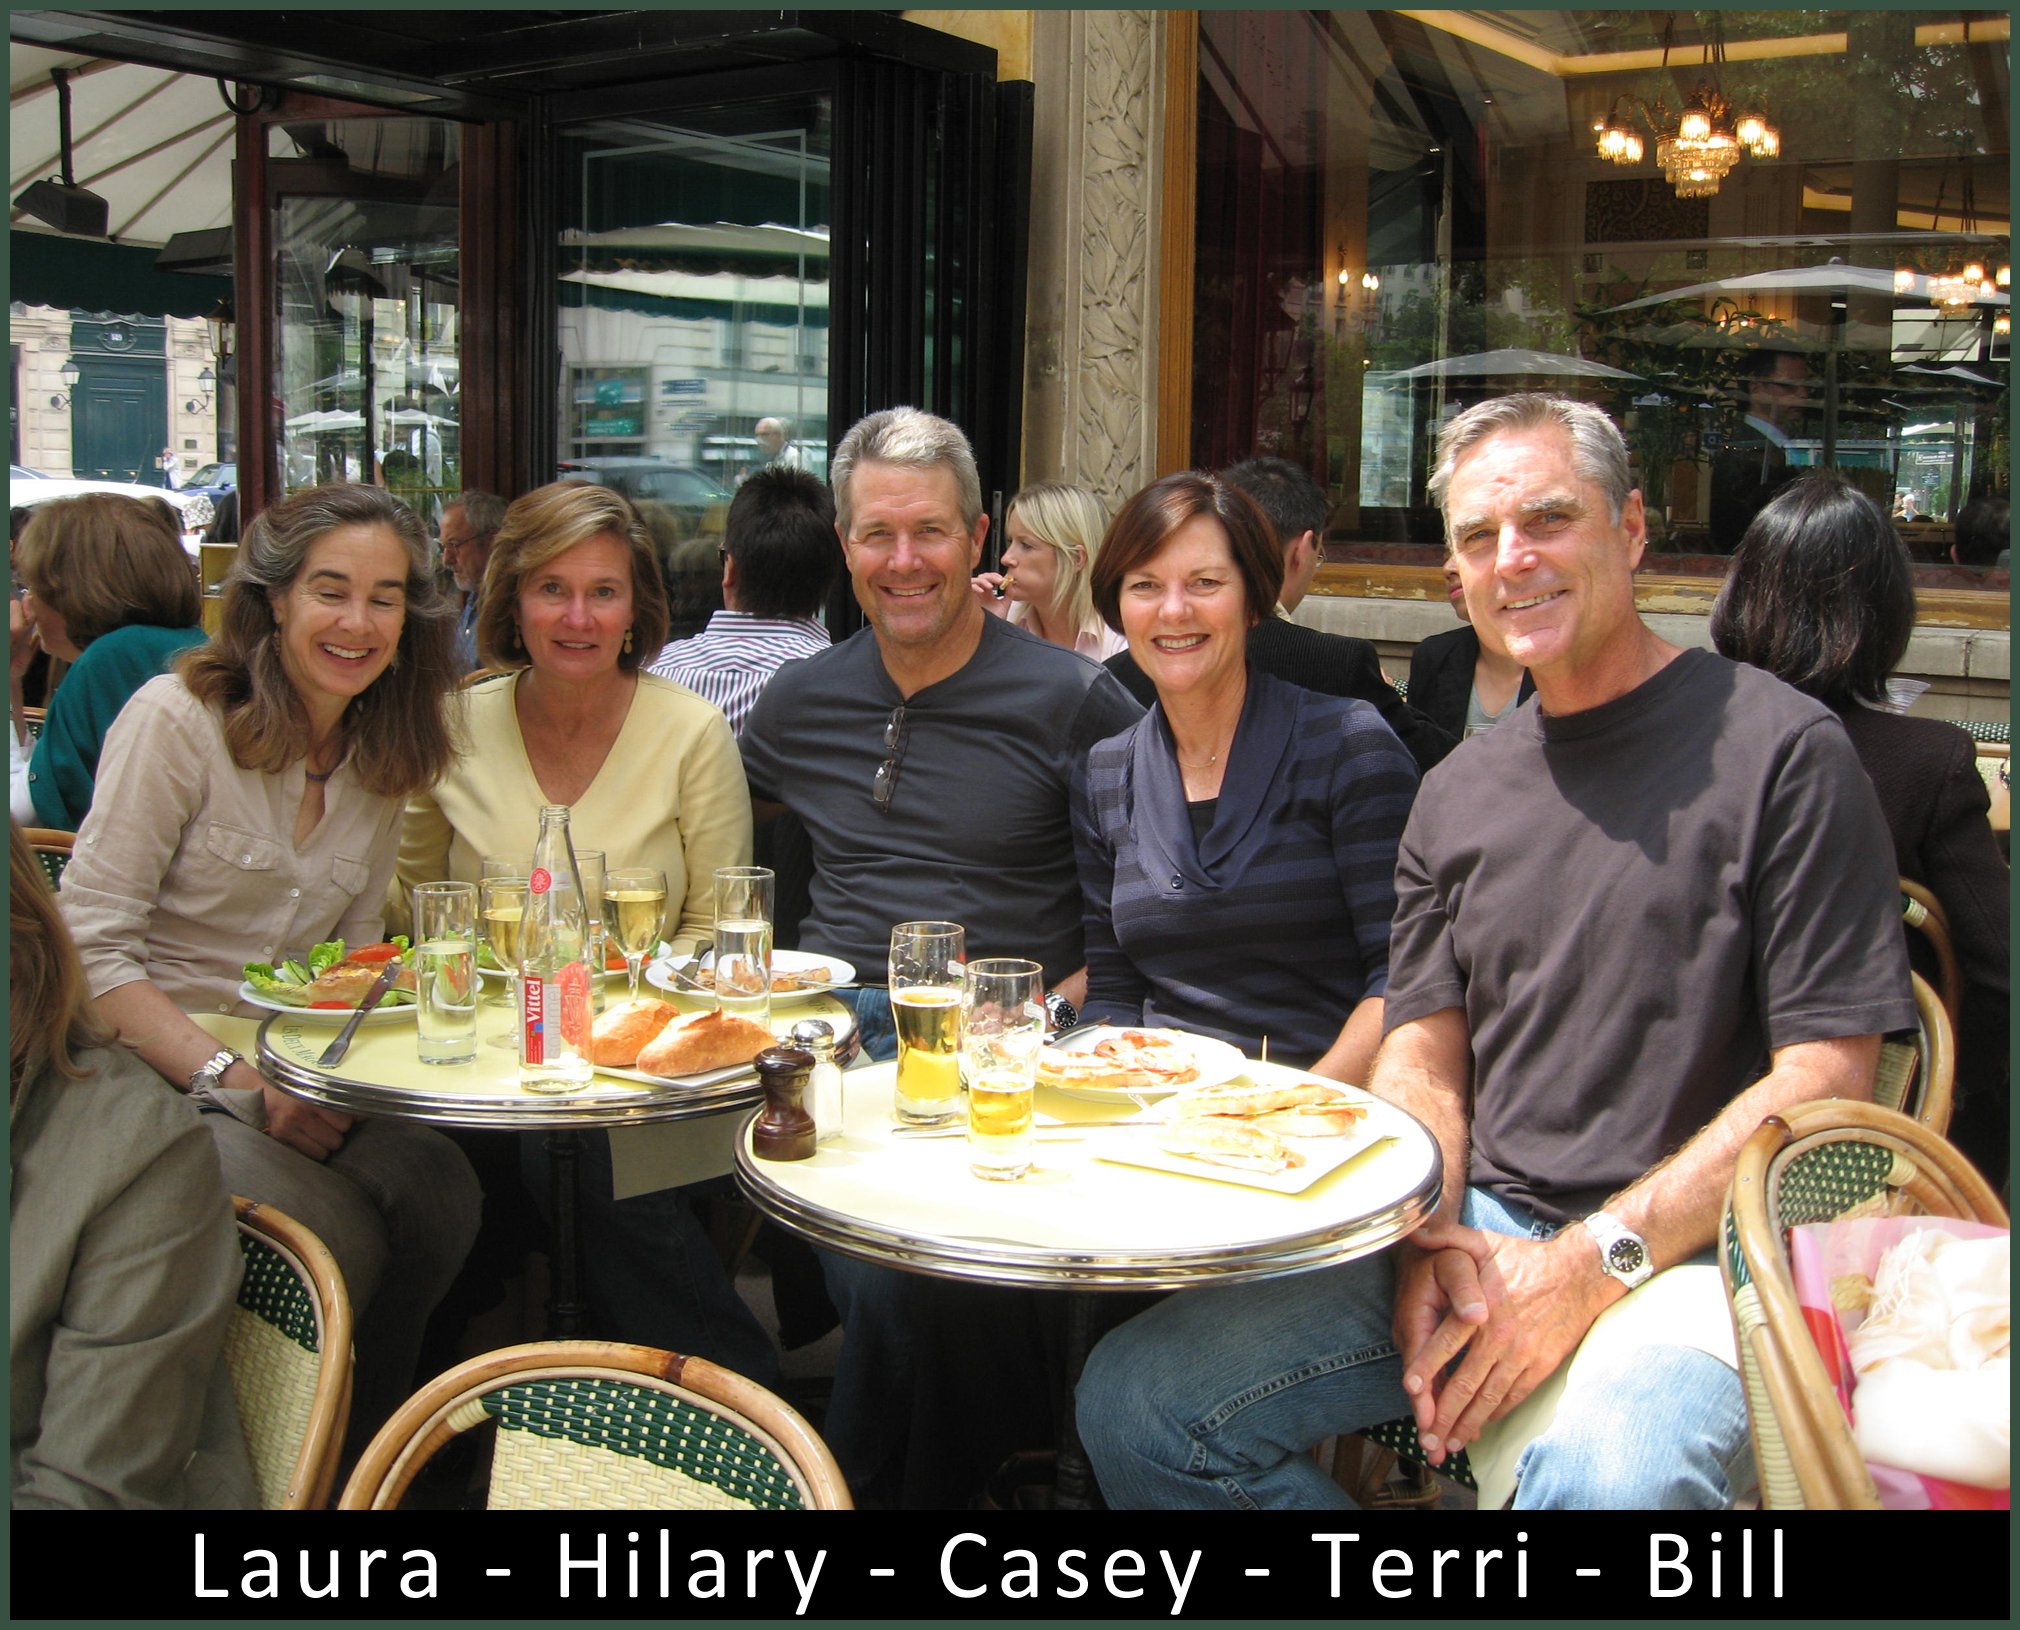 Laura Hilary Casey Terry and Bill at Les Deux Magots